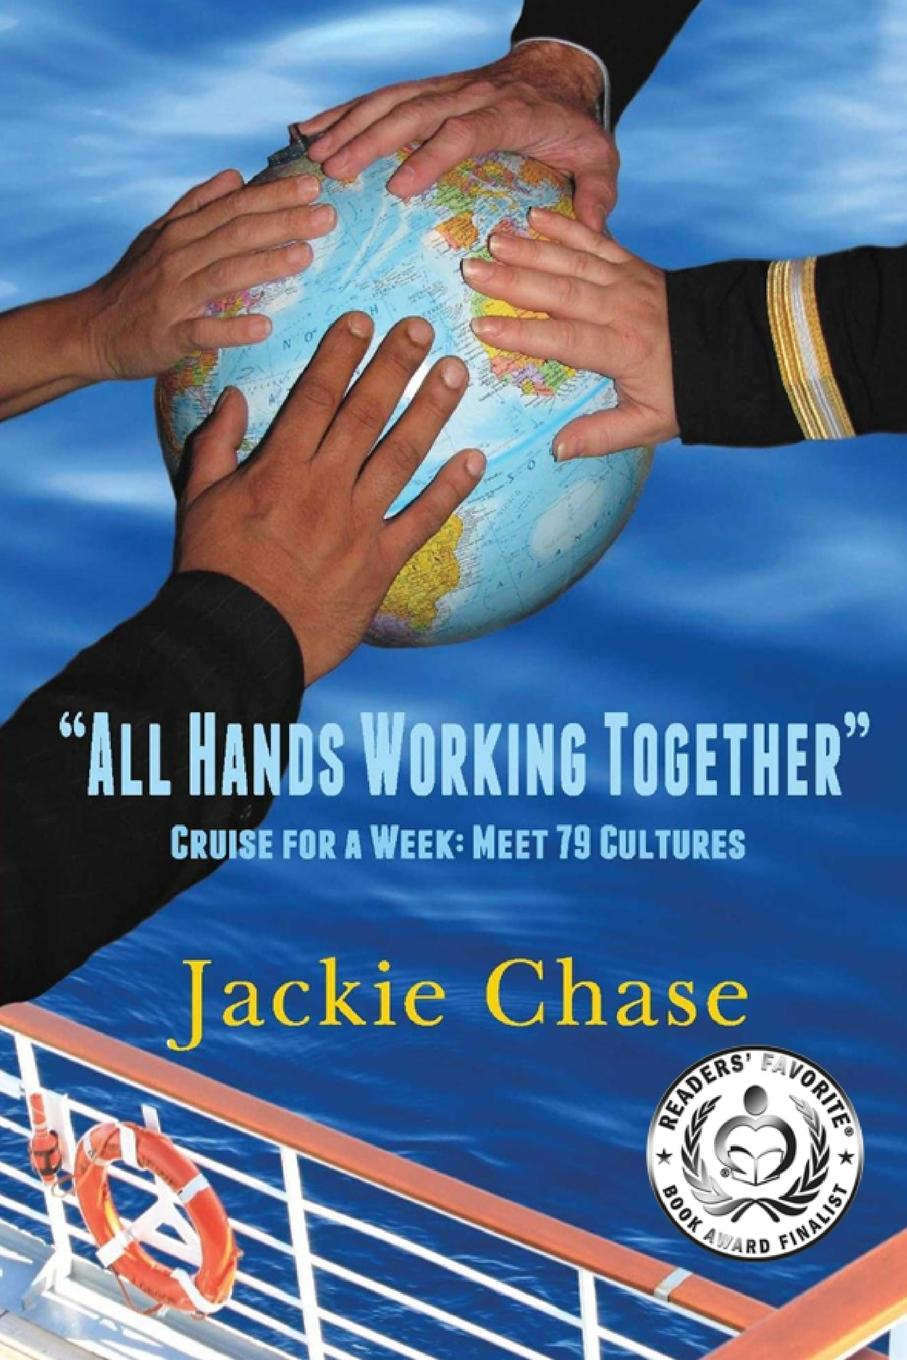 """Jackie Chase. """"All Hands Working Together Cruise for a Week. Meet 79 Cultures"""